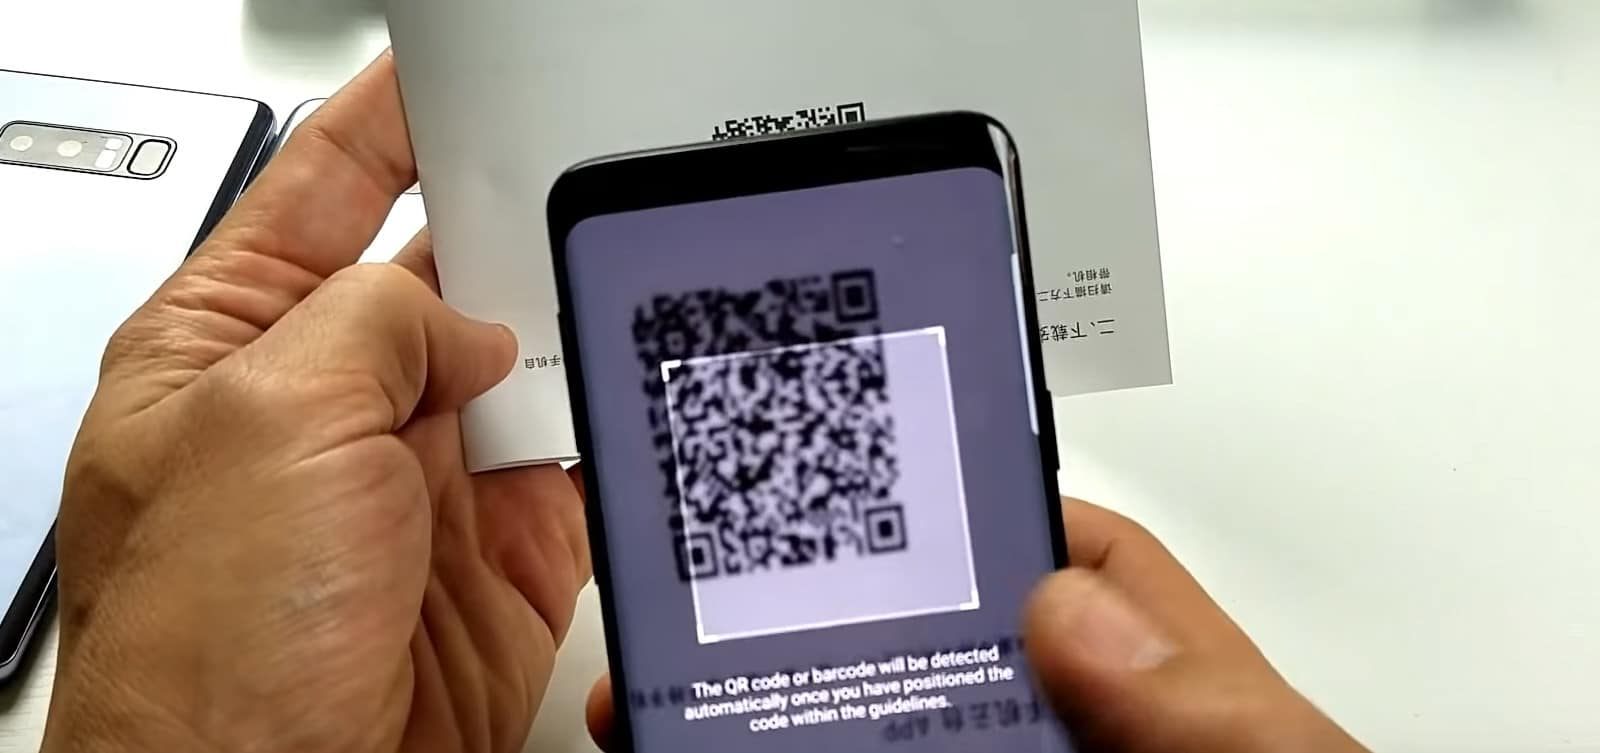 How to scan qr code with Samsung Galaxy S9